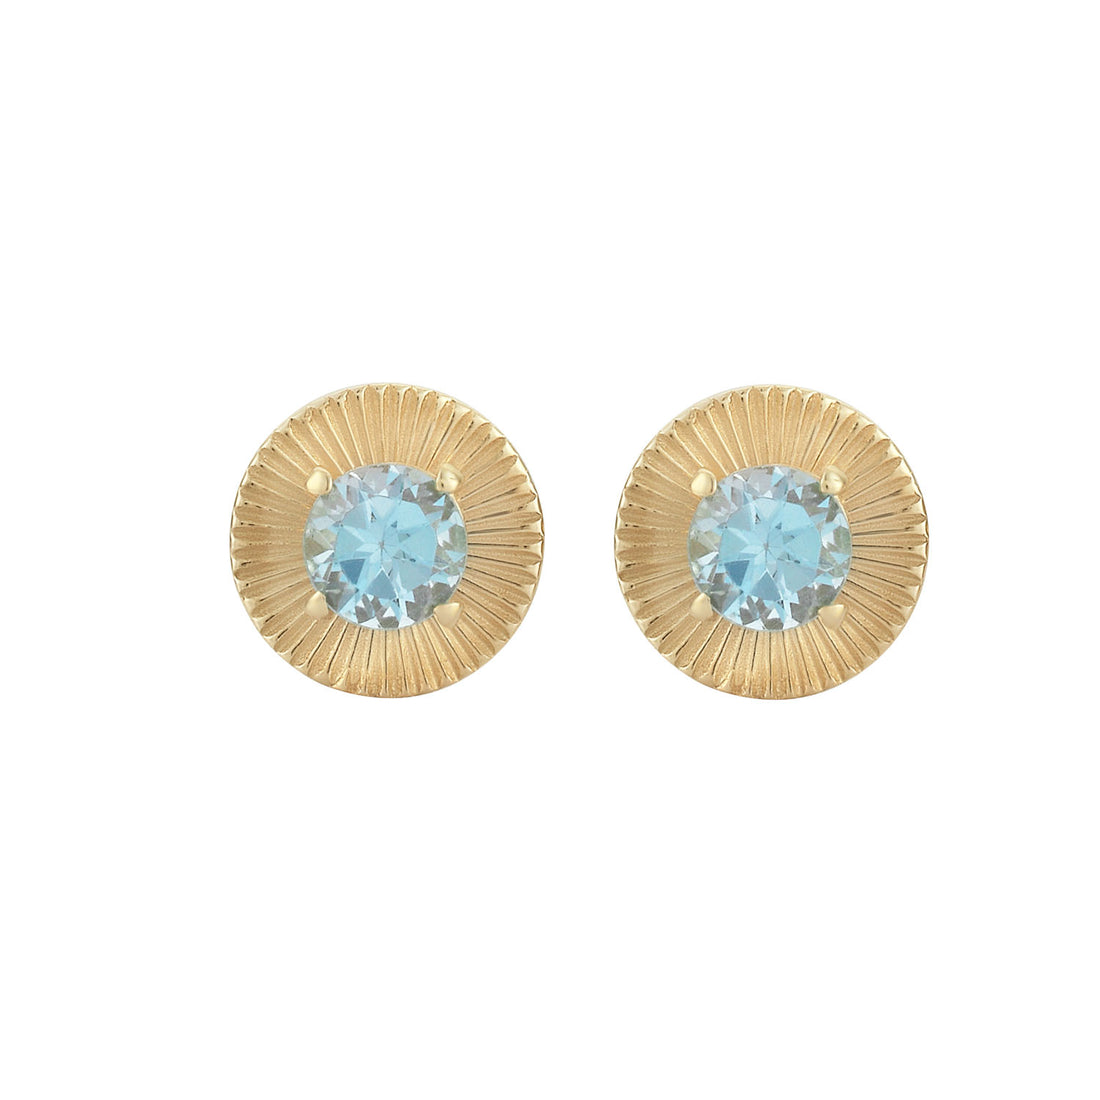 Zoe & Morgan Estella Blue Topaz Earring